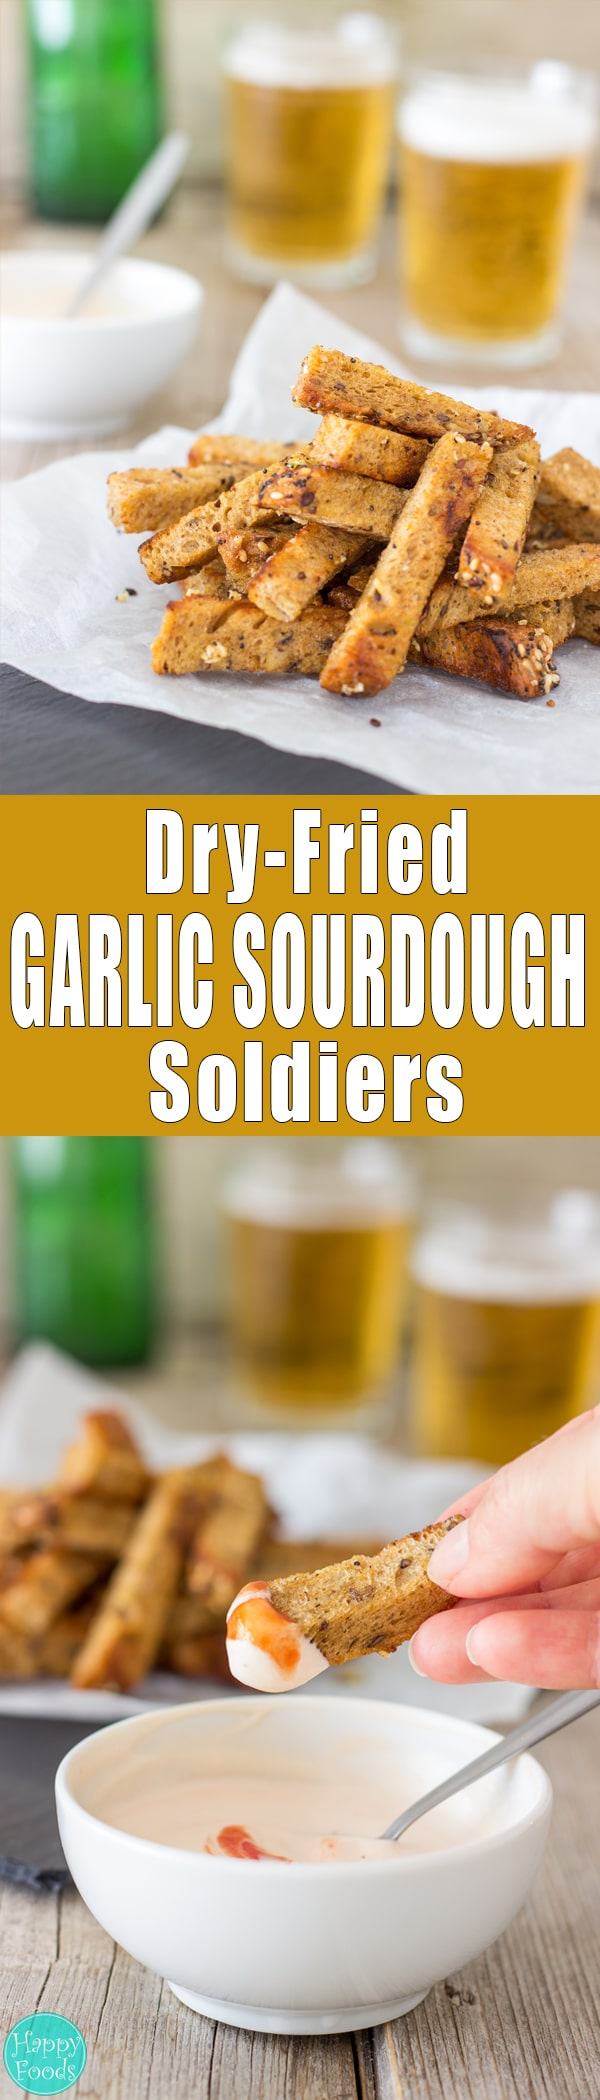 Dry-Fried Garlic Sourdough Soldiers (Küüslauguleivad) - An incredible snack recipe that goes hand in hand with beer. Crispy stripes of sourdough bread dry-fried and coated in olive oil + garlic. | happyfoodstube.com